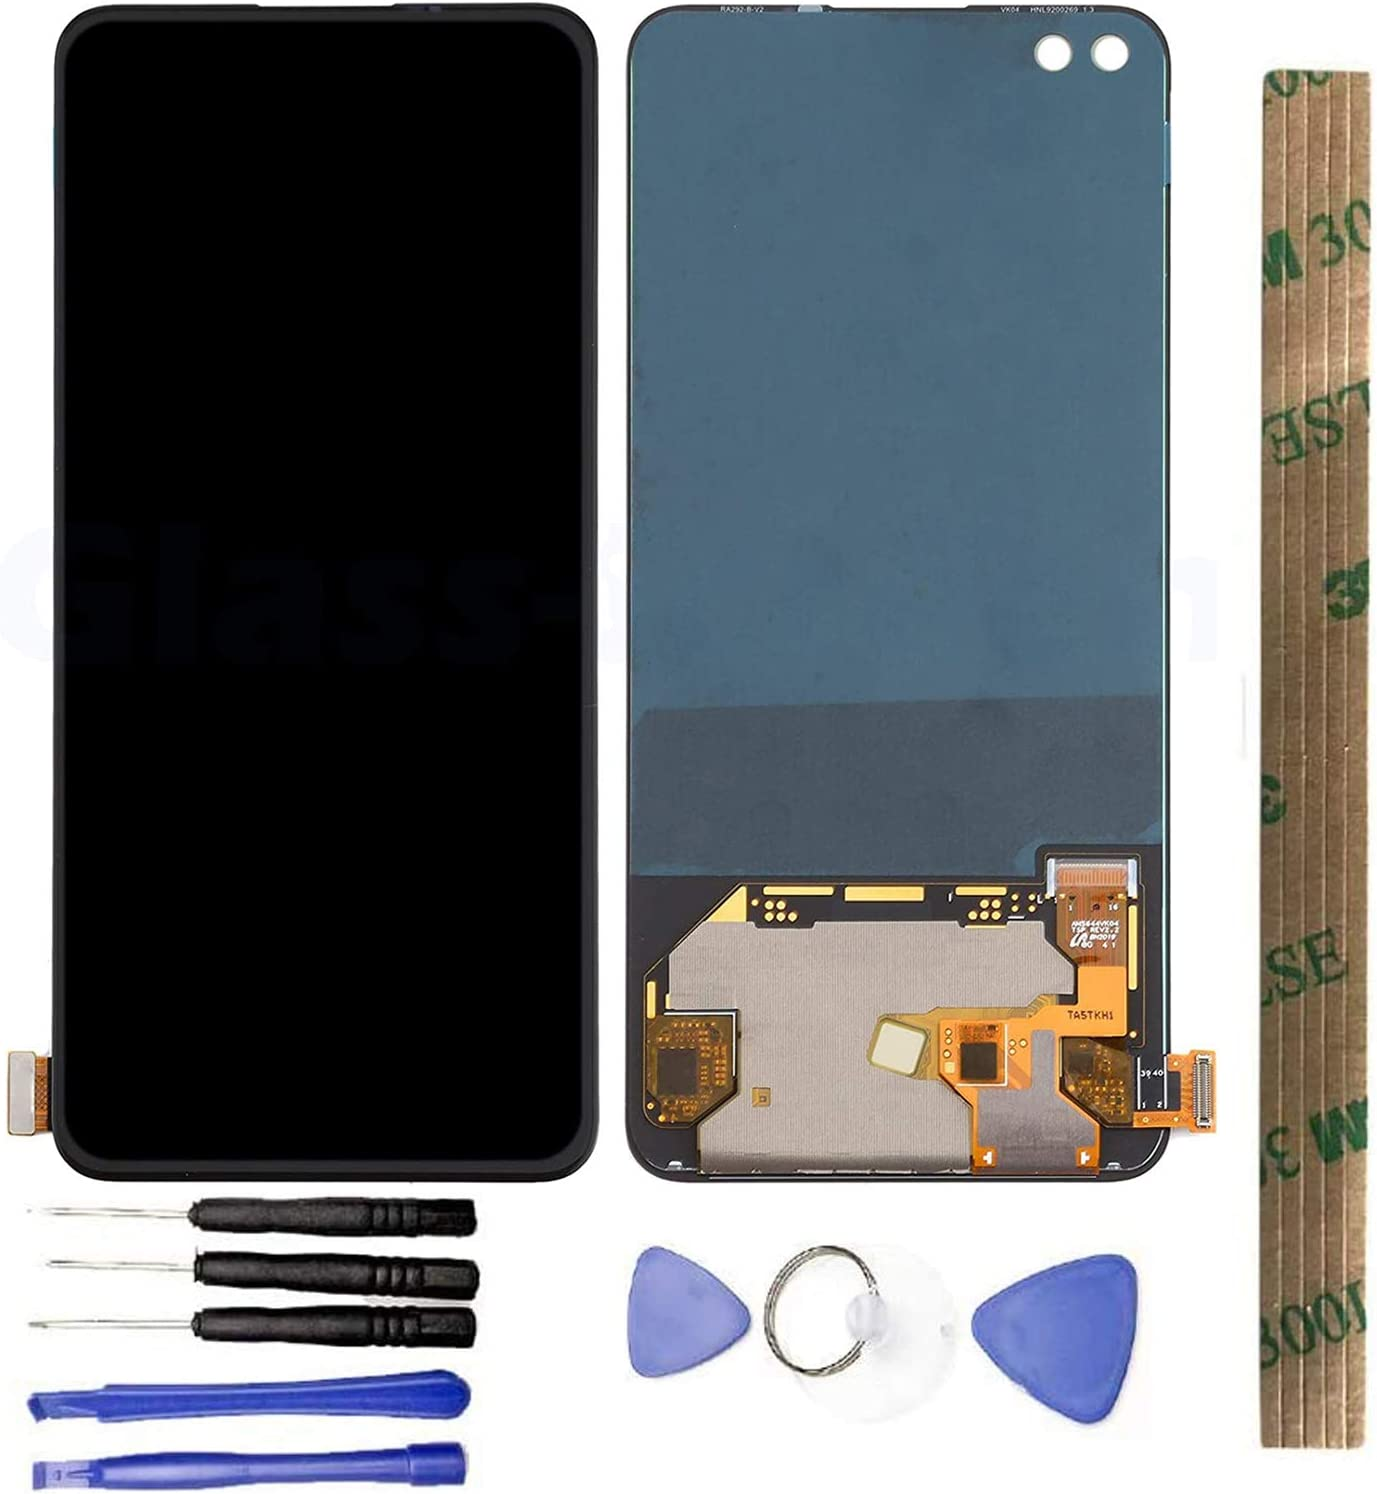 Recommended JayTong LCD Display Replacement Touch Digitizer Screen 4 years warranty Assembl